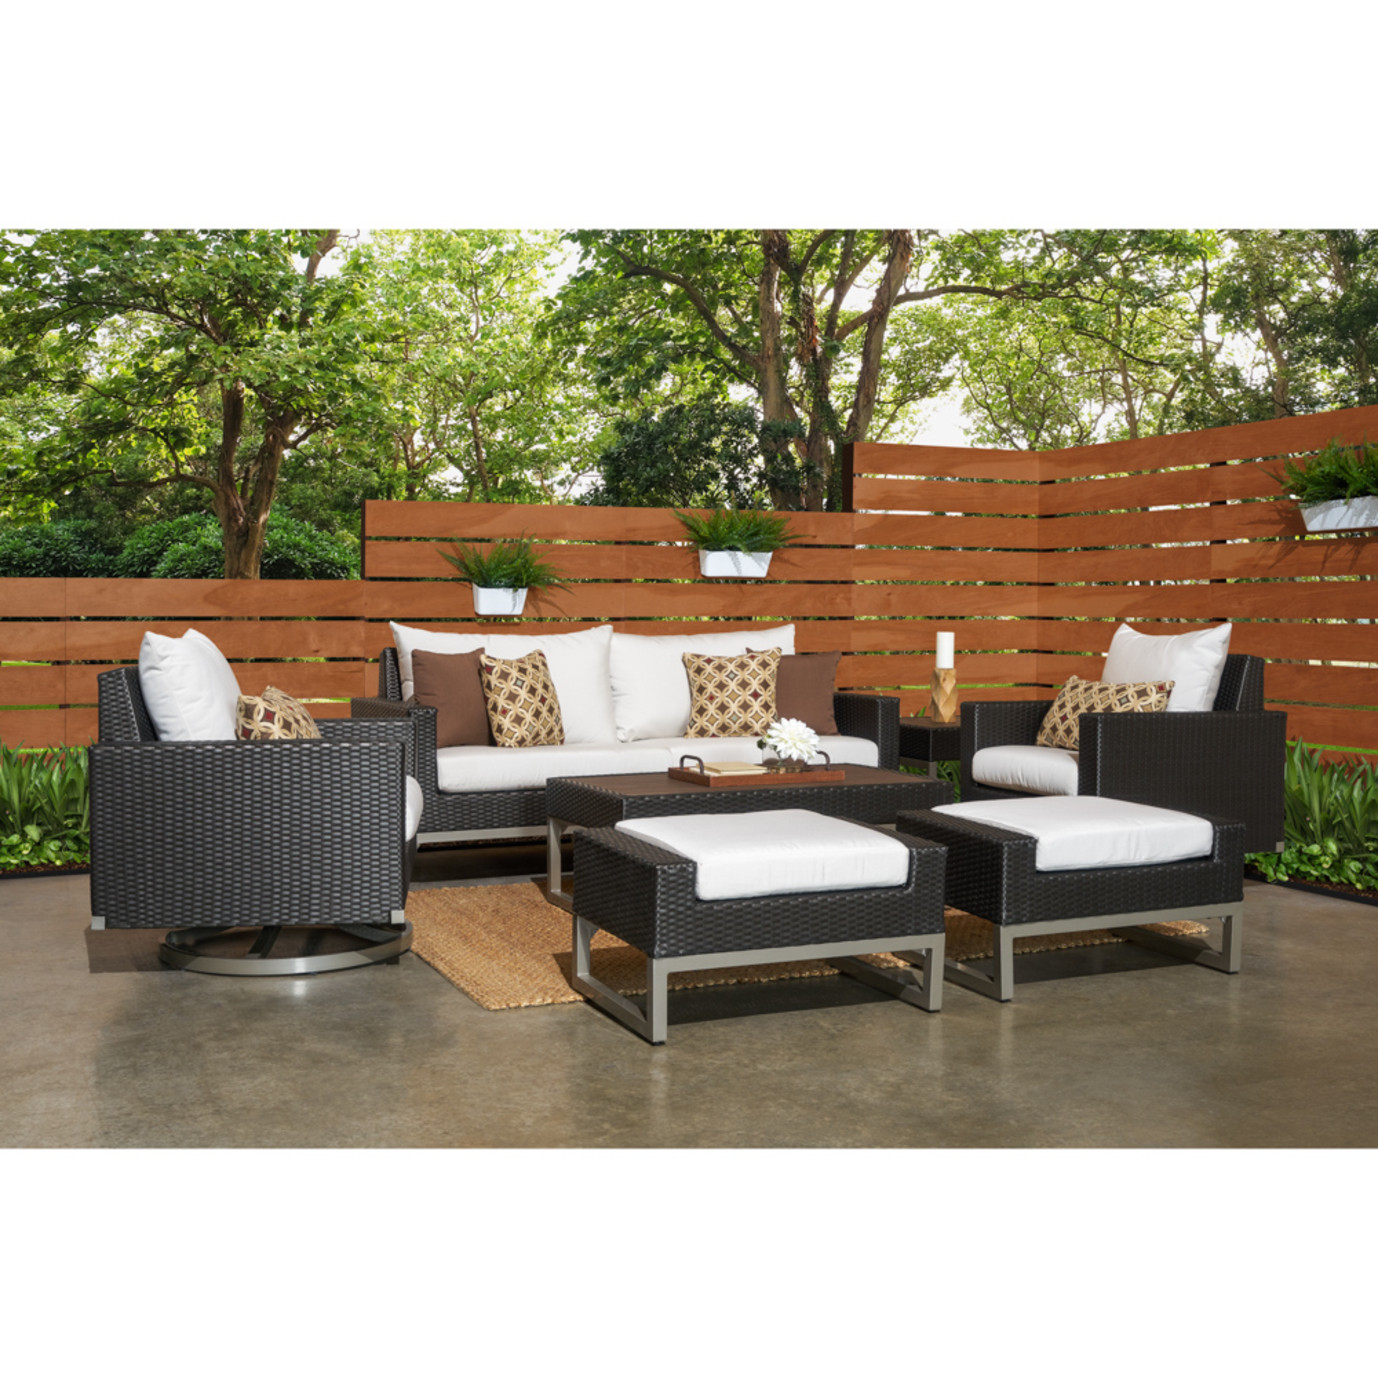 Milo™ Espresso 7 Piece Motion Deep Seating Set - Moroccan Cream